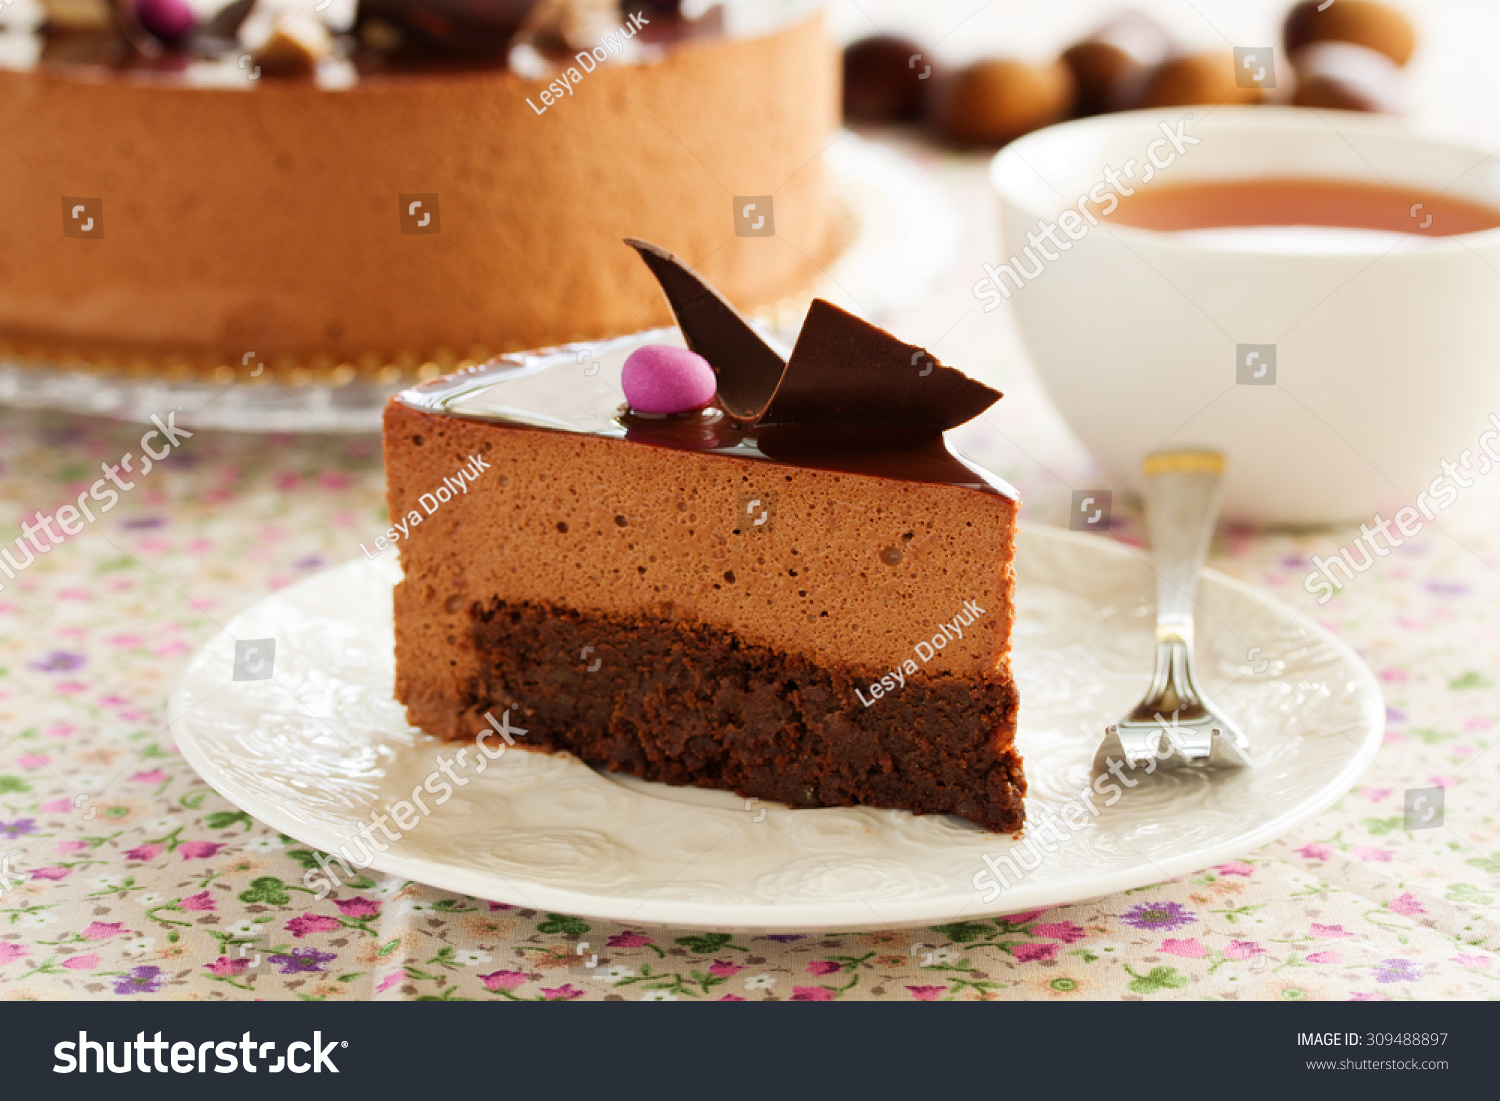 Chocolate Cake With Chestnut Mousse Brownie. Stock Photo ...